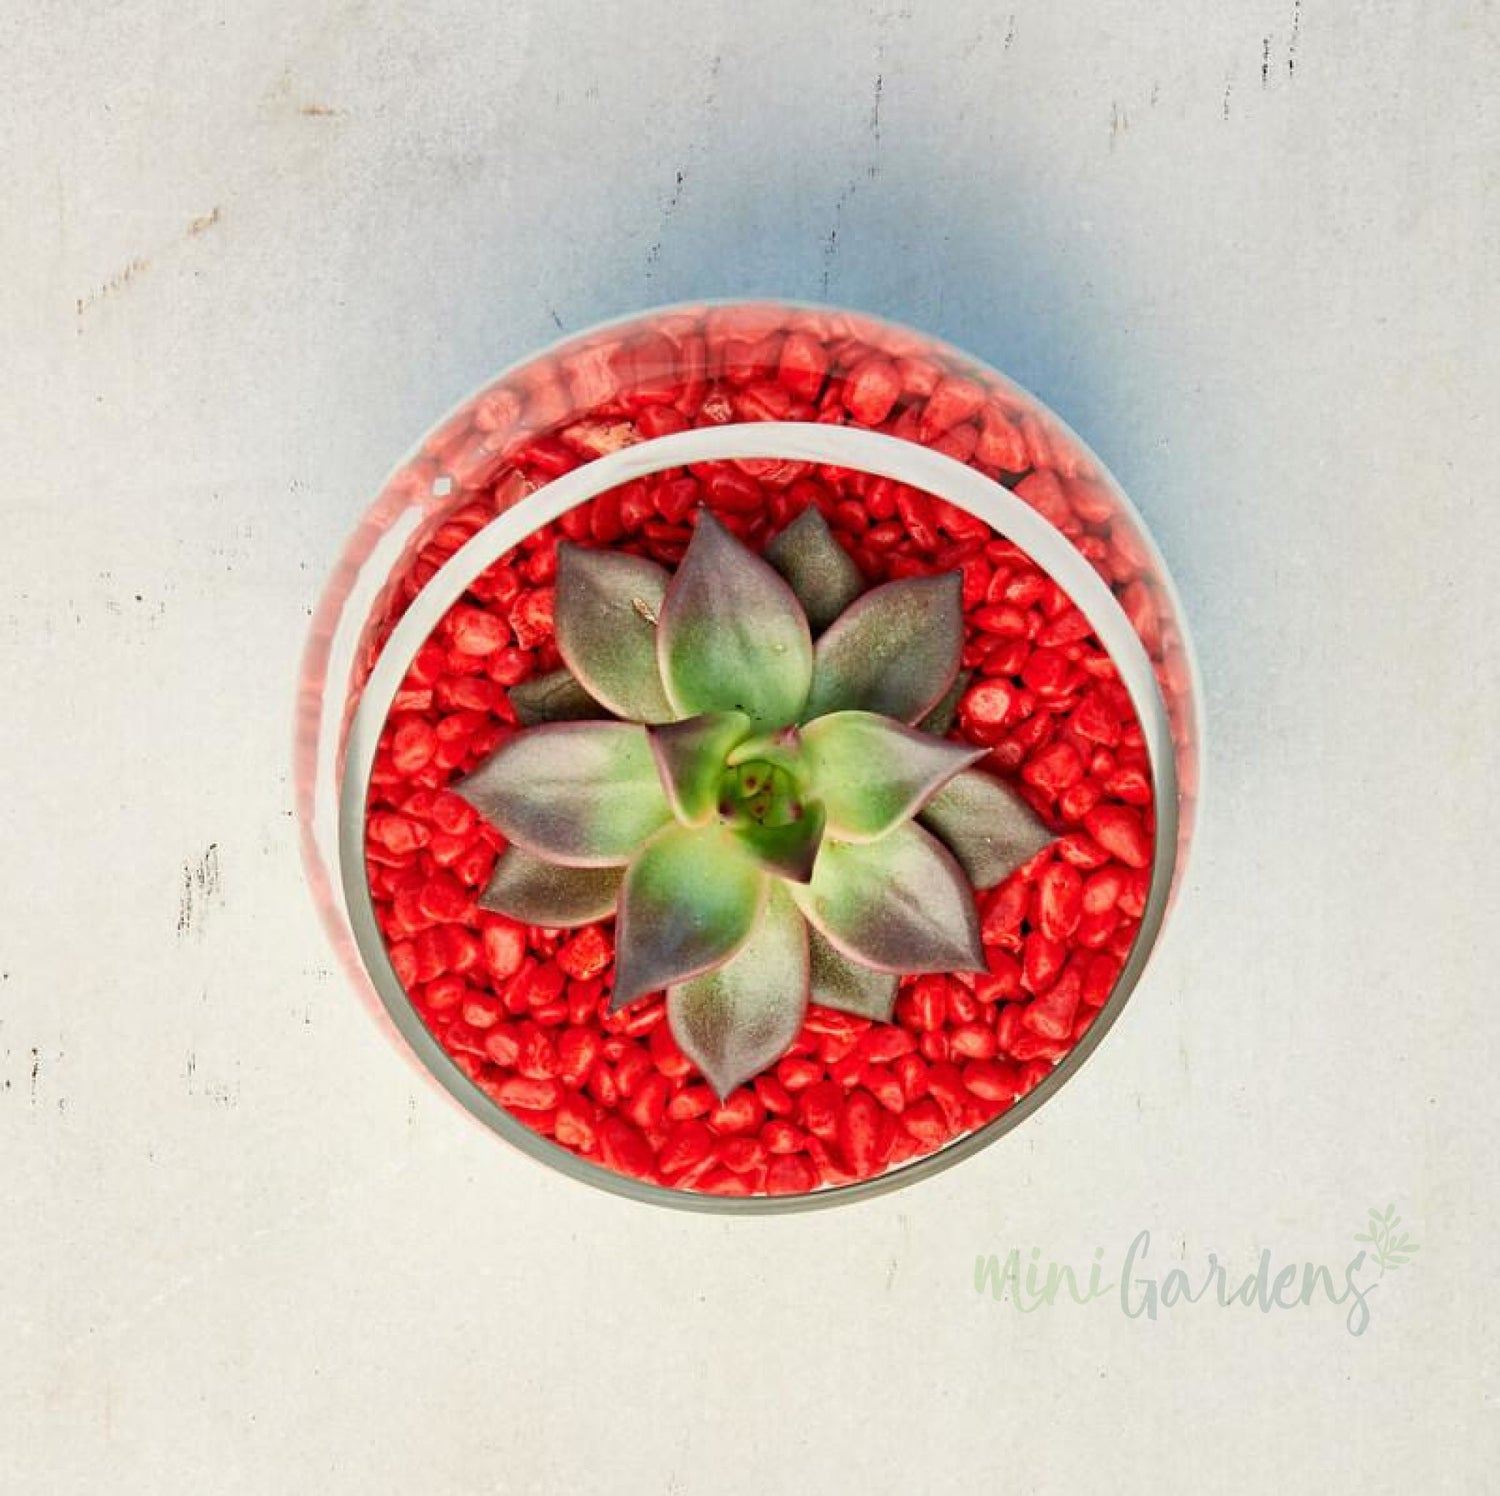 National Day Succulent (Half Moon Glass Bowl Small) Minigardens.ae Free Shipping Dubai United Arab Emirates All Minigardens Corporate